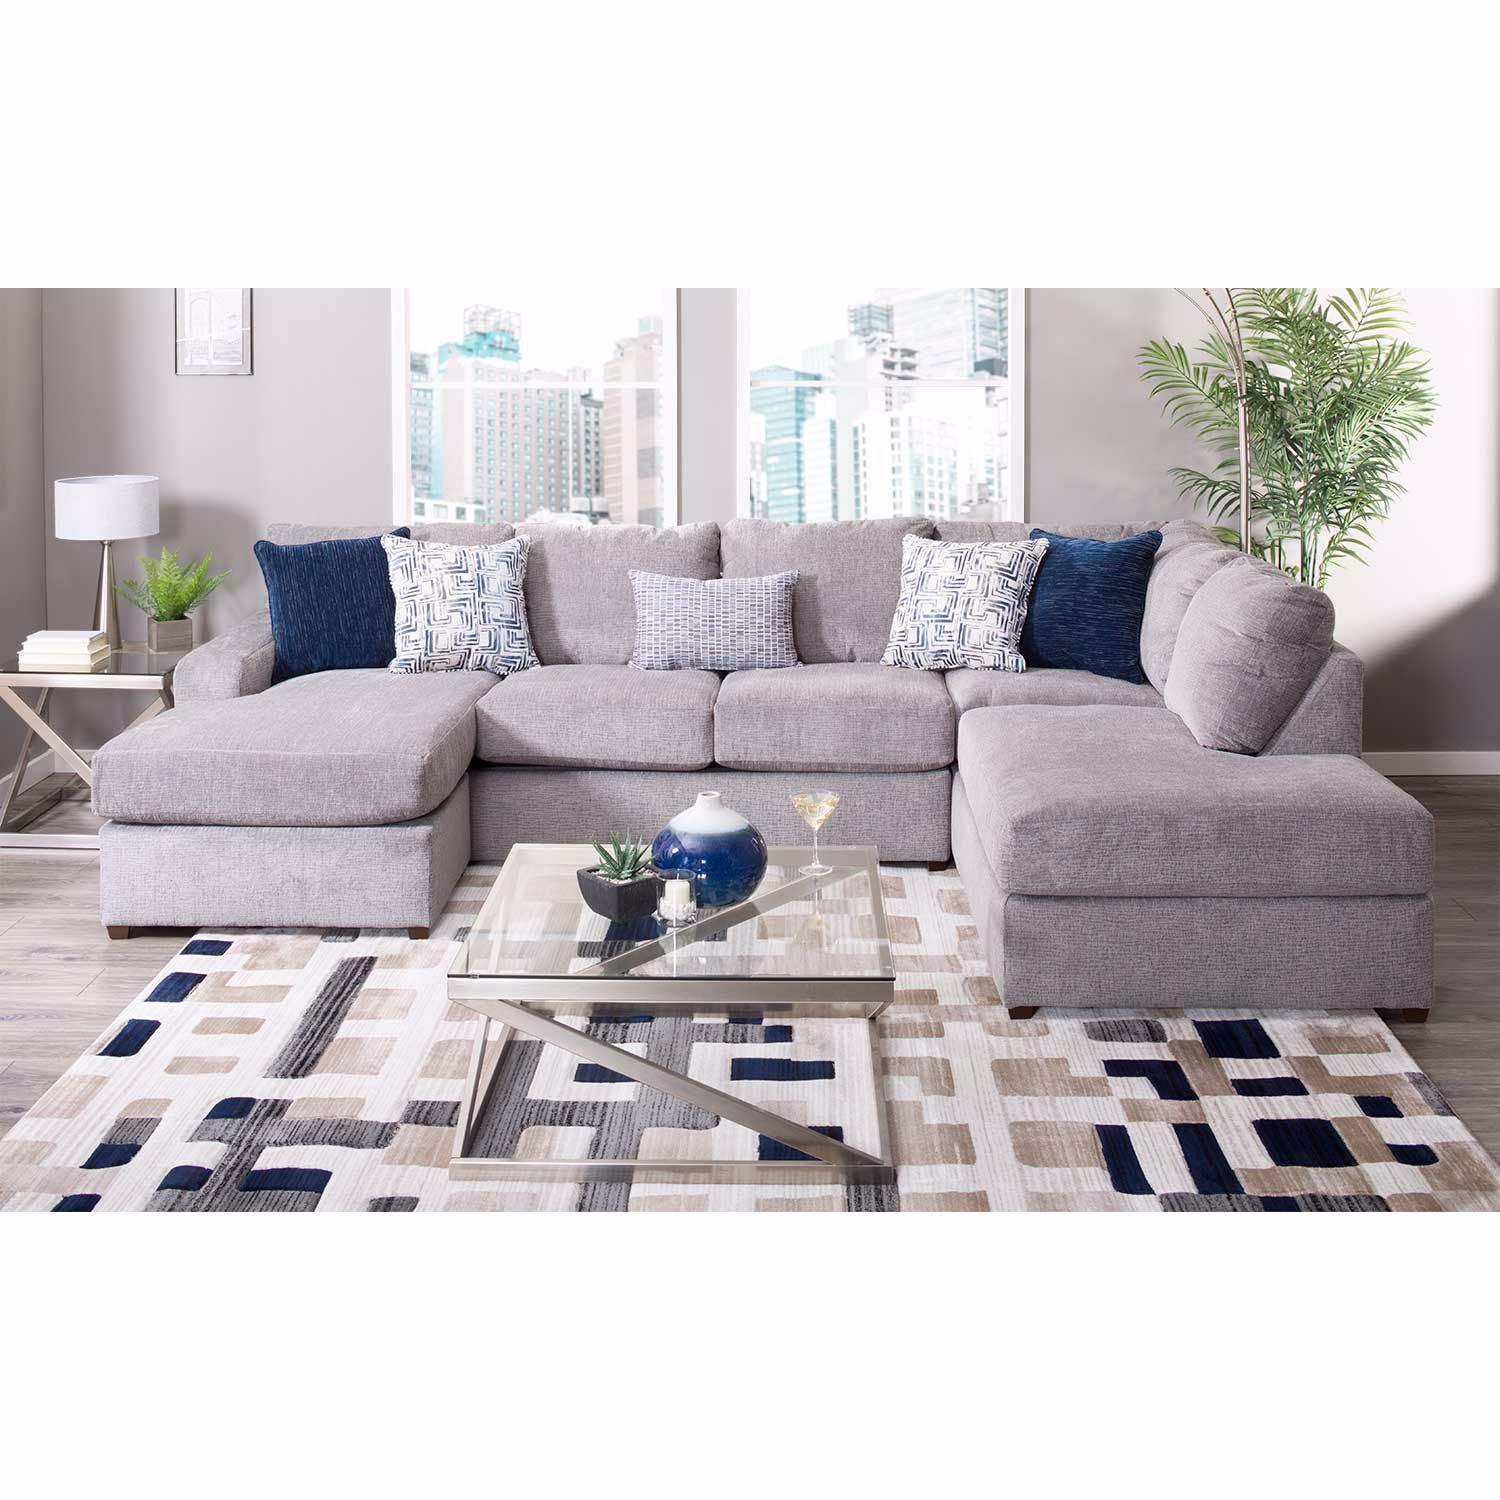 Oasis Flagstone 2 Piece RAF Sofa Chaise Sectional